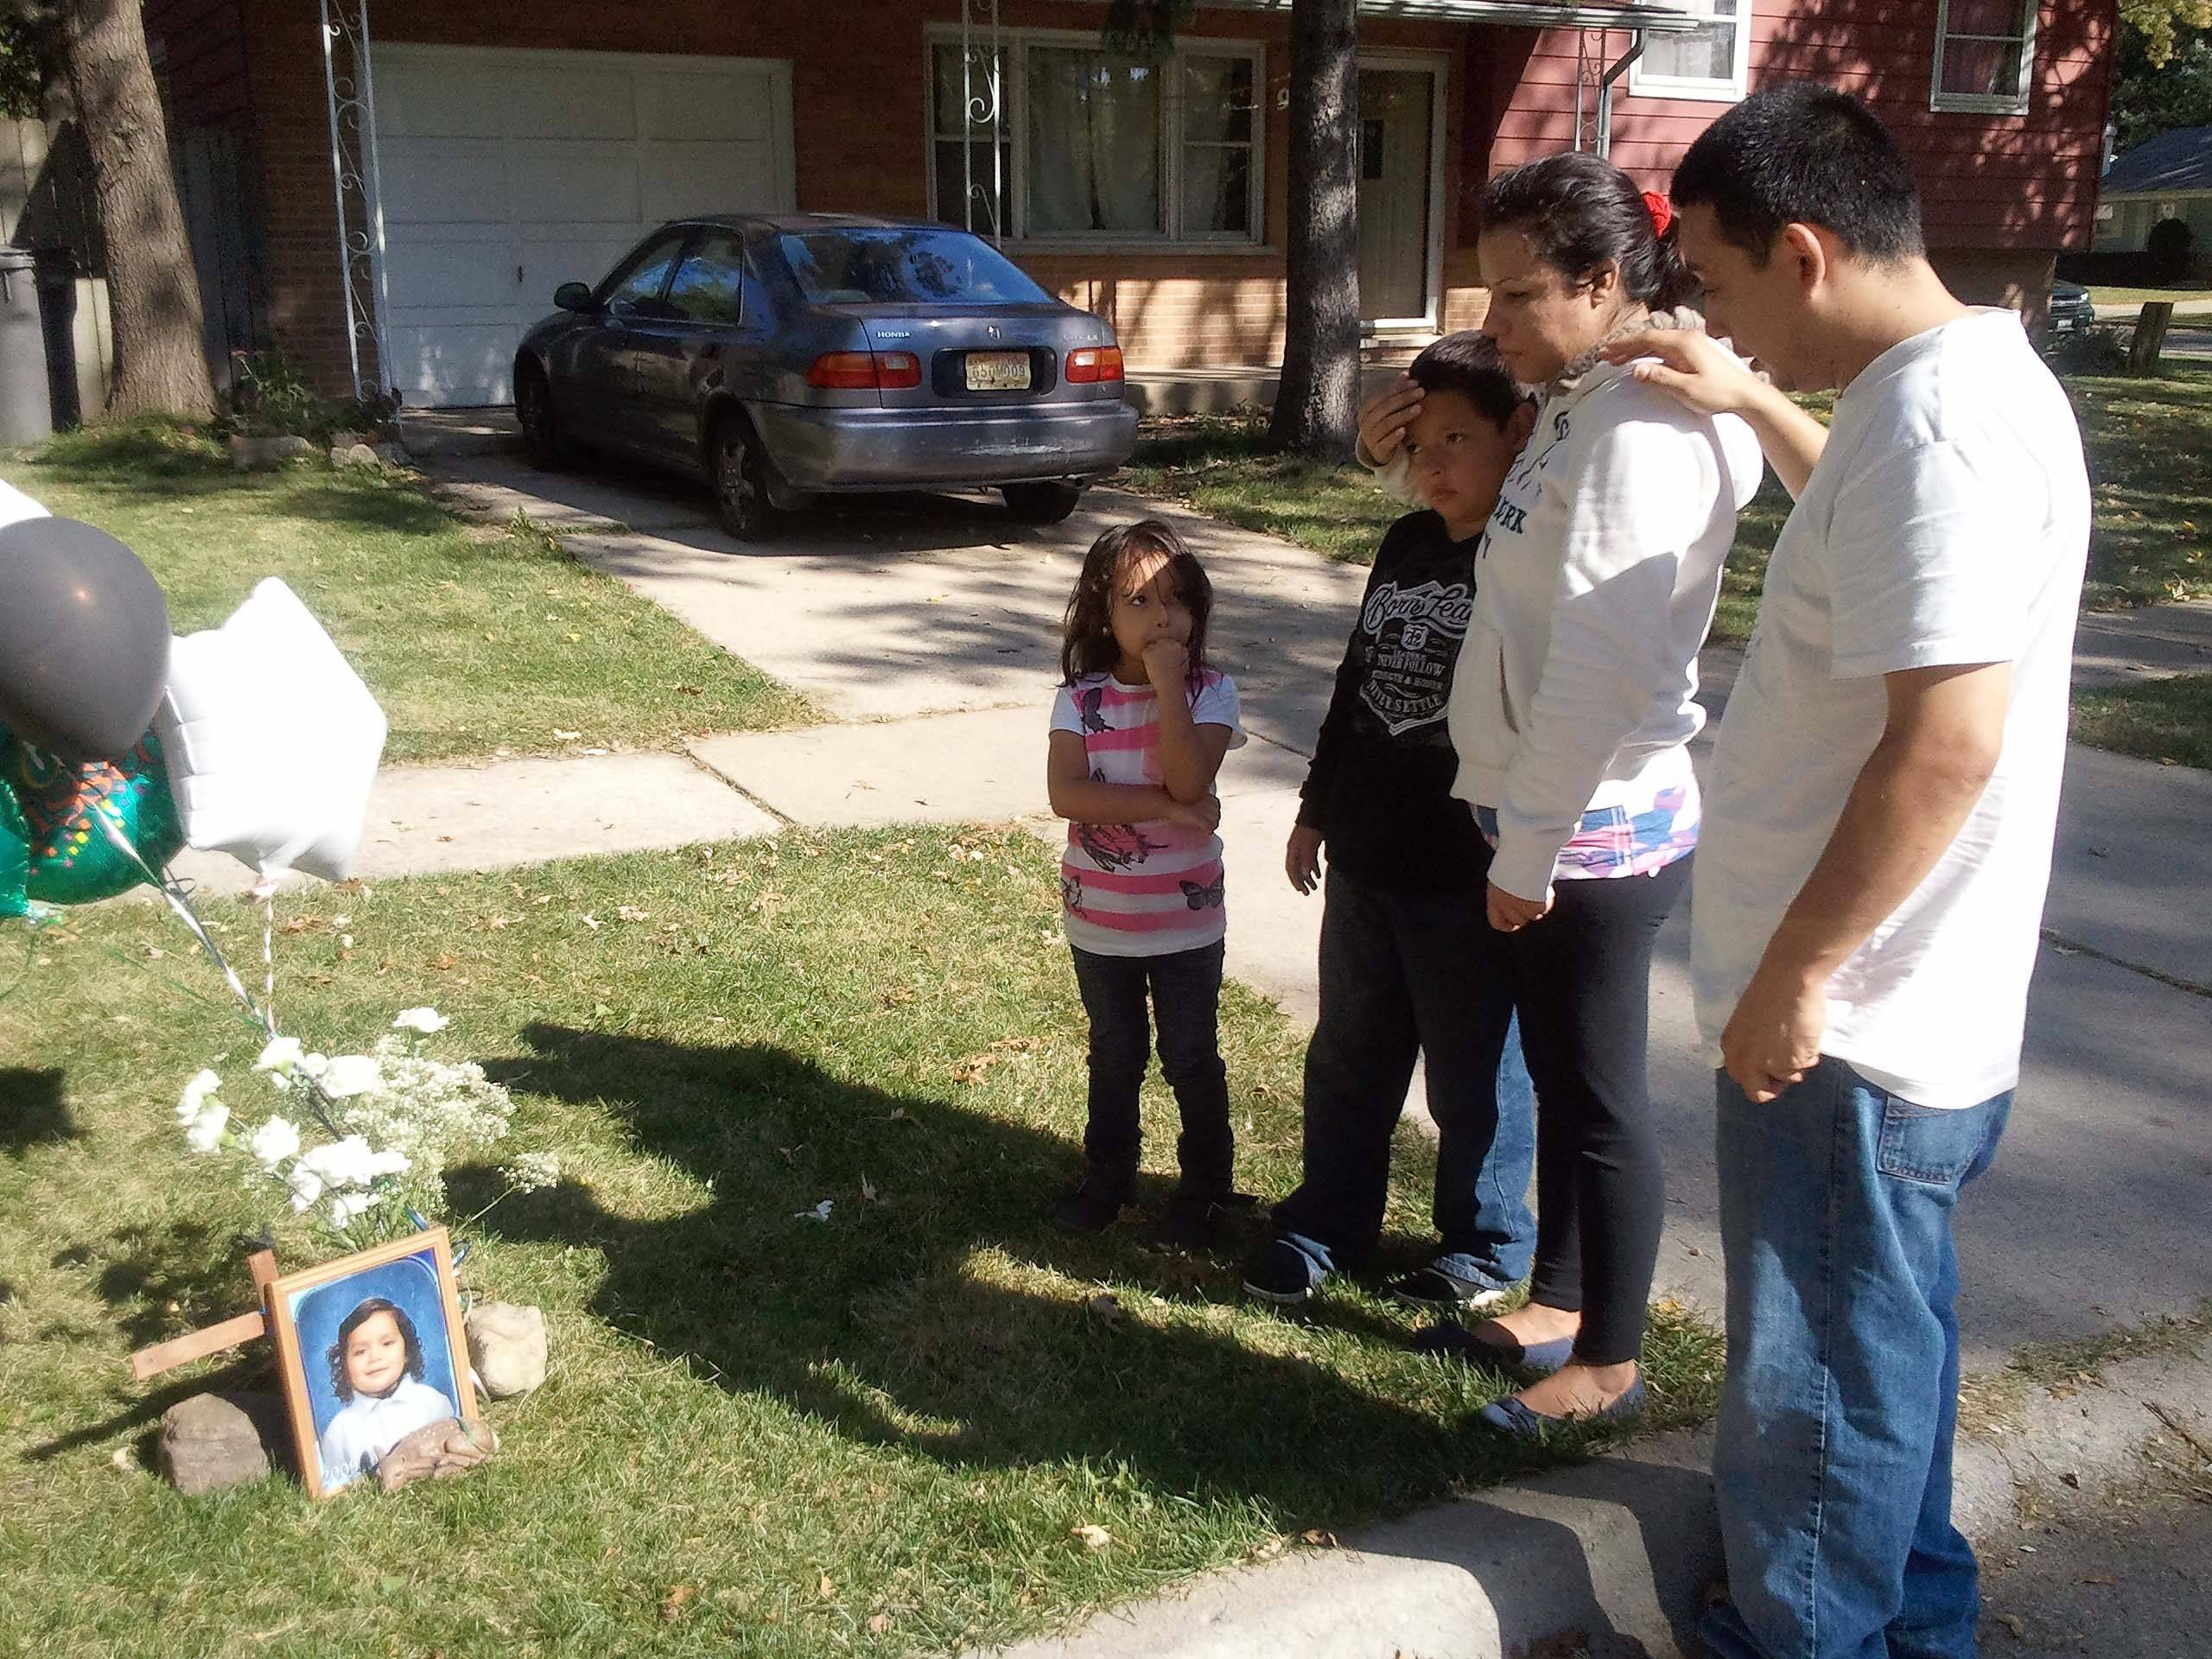 The death of 5-year-old Eric M. Galarza Jr. is mourned by neighbors Jorge Linares, from right, his wife Eglaen Padilla, and their children Jorge, 7, and Natalia, 5. The kids were at each other's houses almost every day, Jorge Linares said.